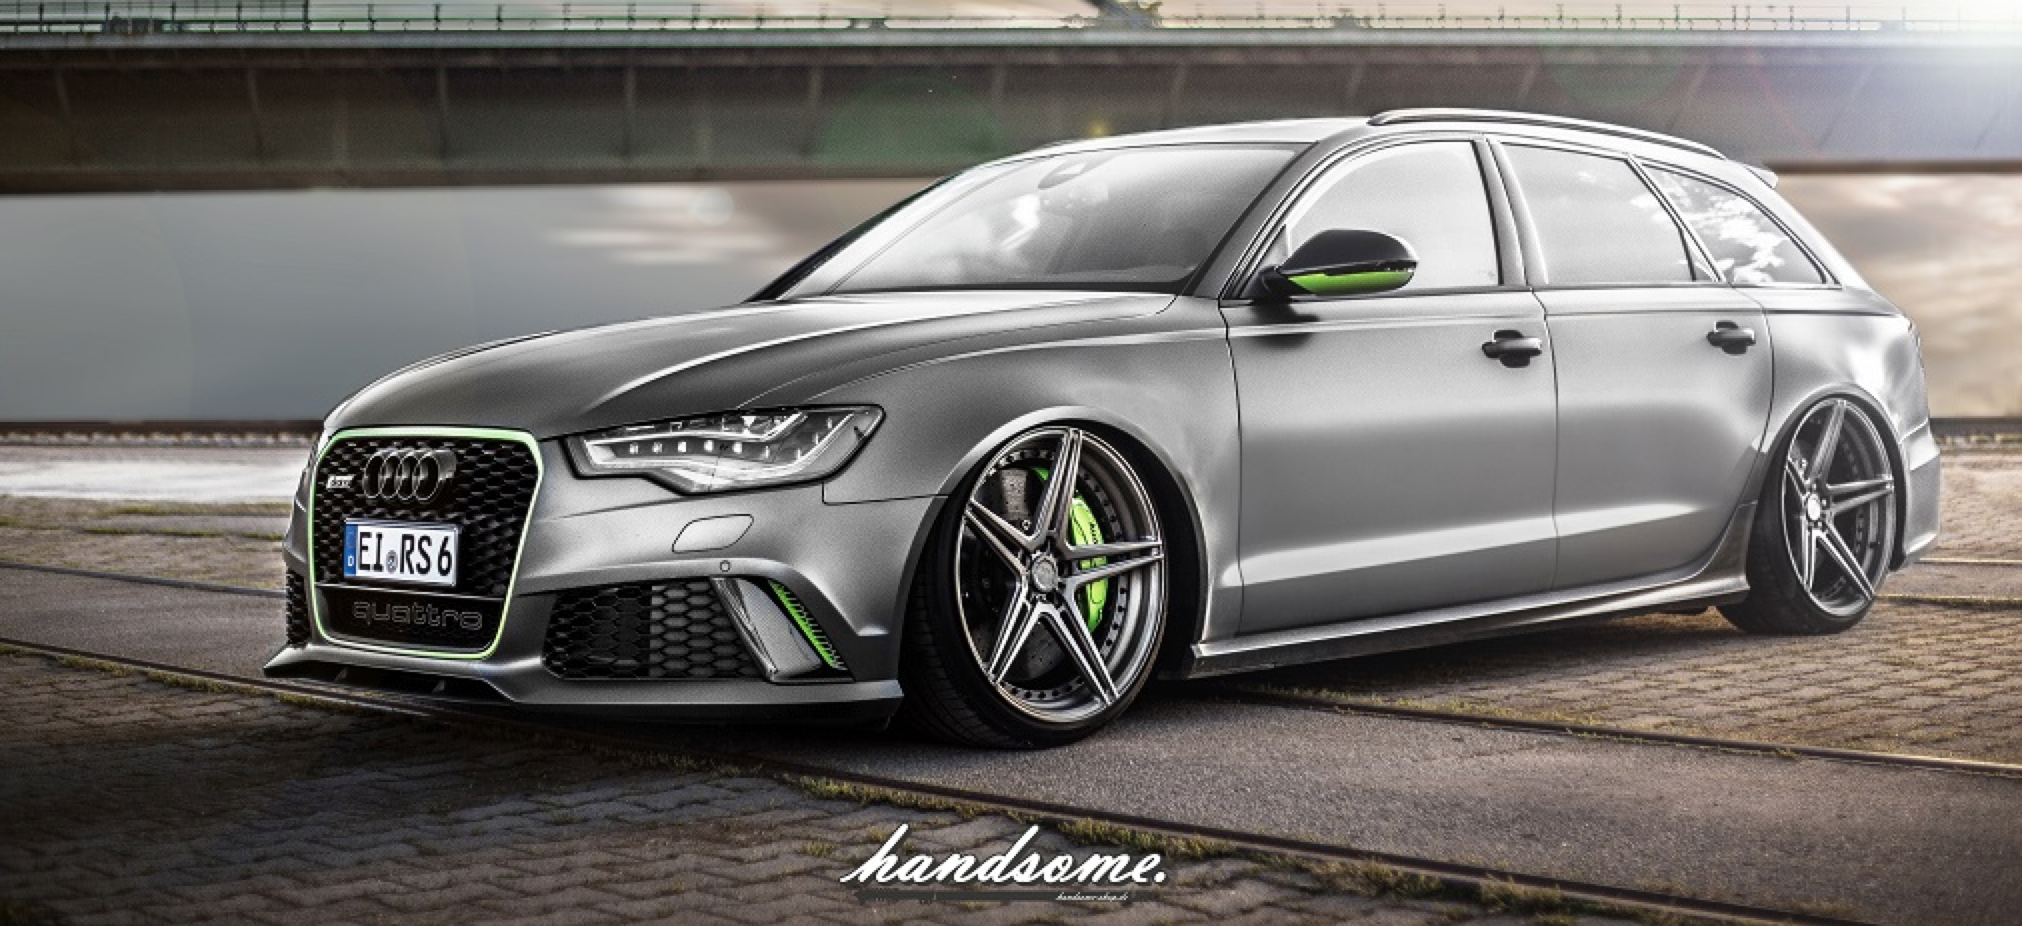 Mission Impossible Super Low Stance For New Audi Rs6